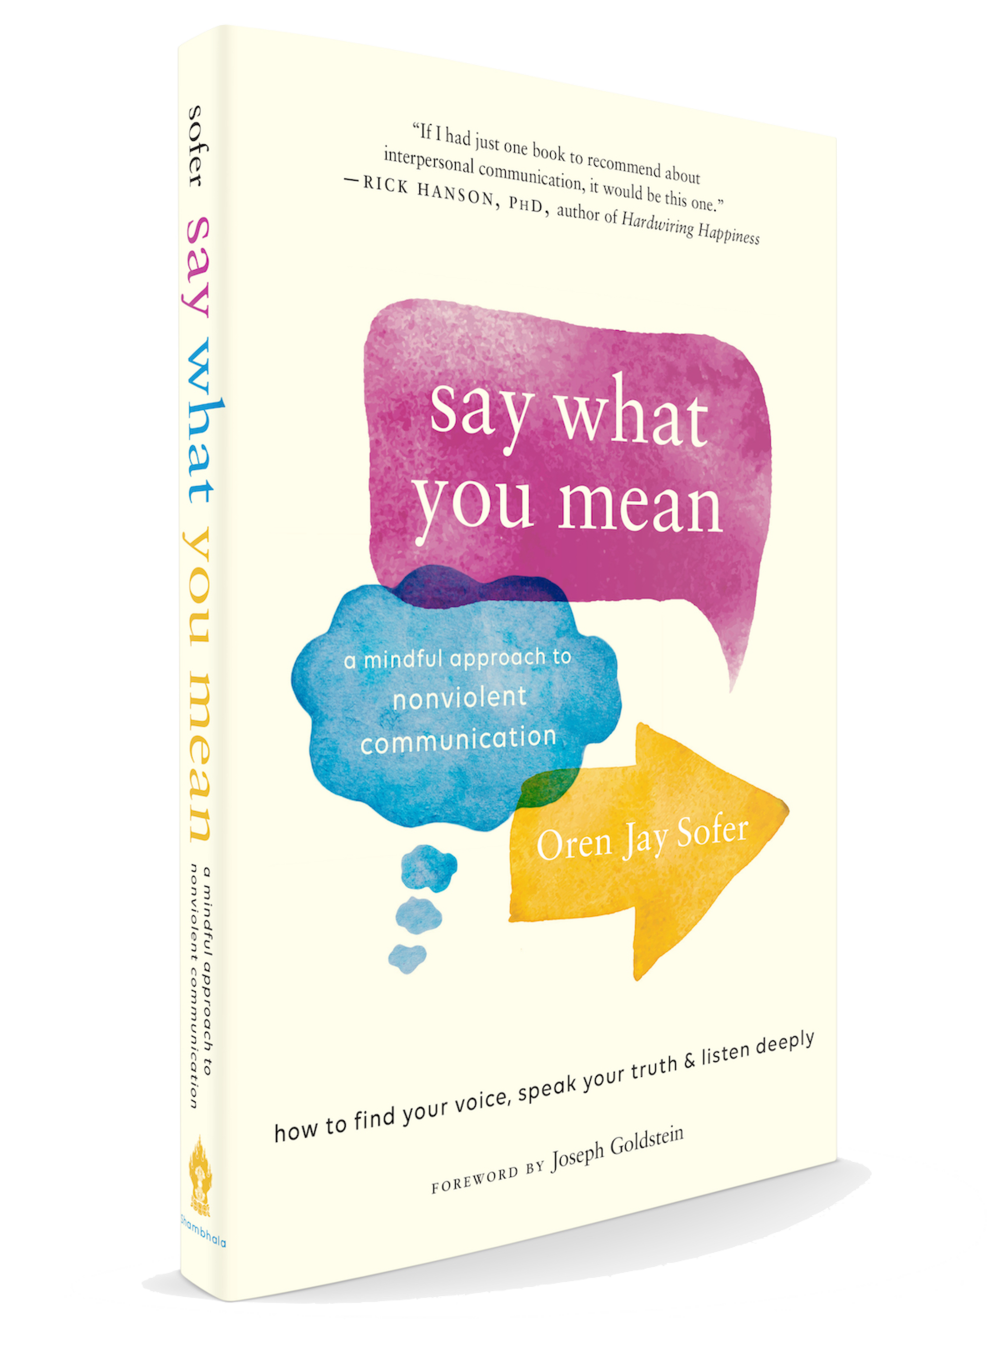 Mindful-Communication-book